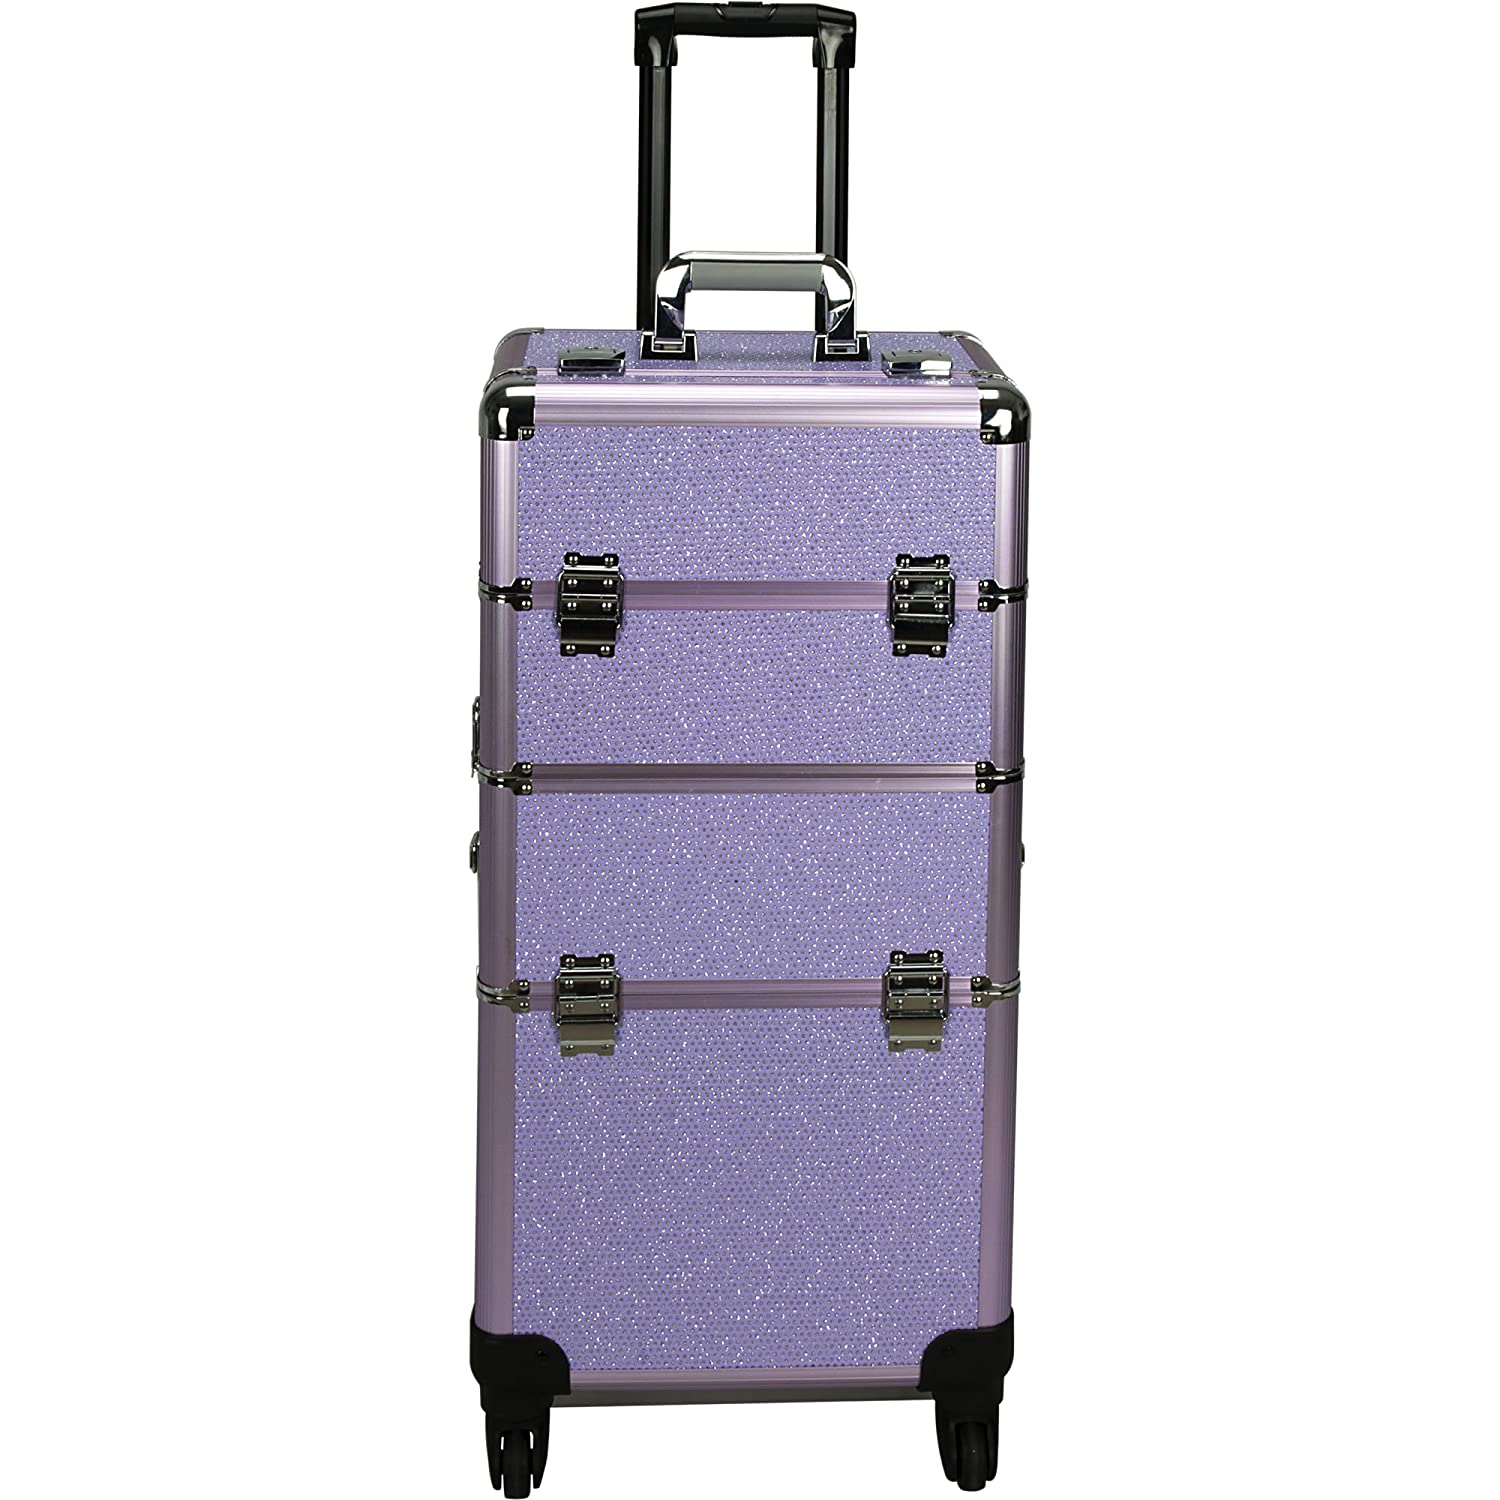 Hiker HK6501 4-Wheels Professional Rolling Aluminium Cosmetic Makeup Case and Easy-Slide and Extendable Trays with Dividers, Purple Krystal, 22 lb